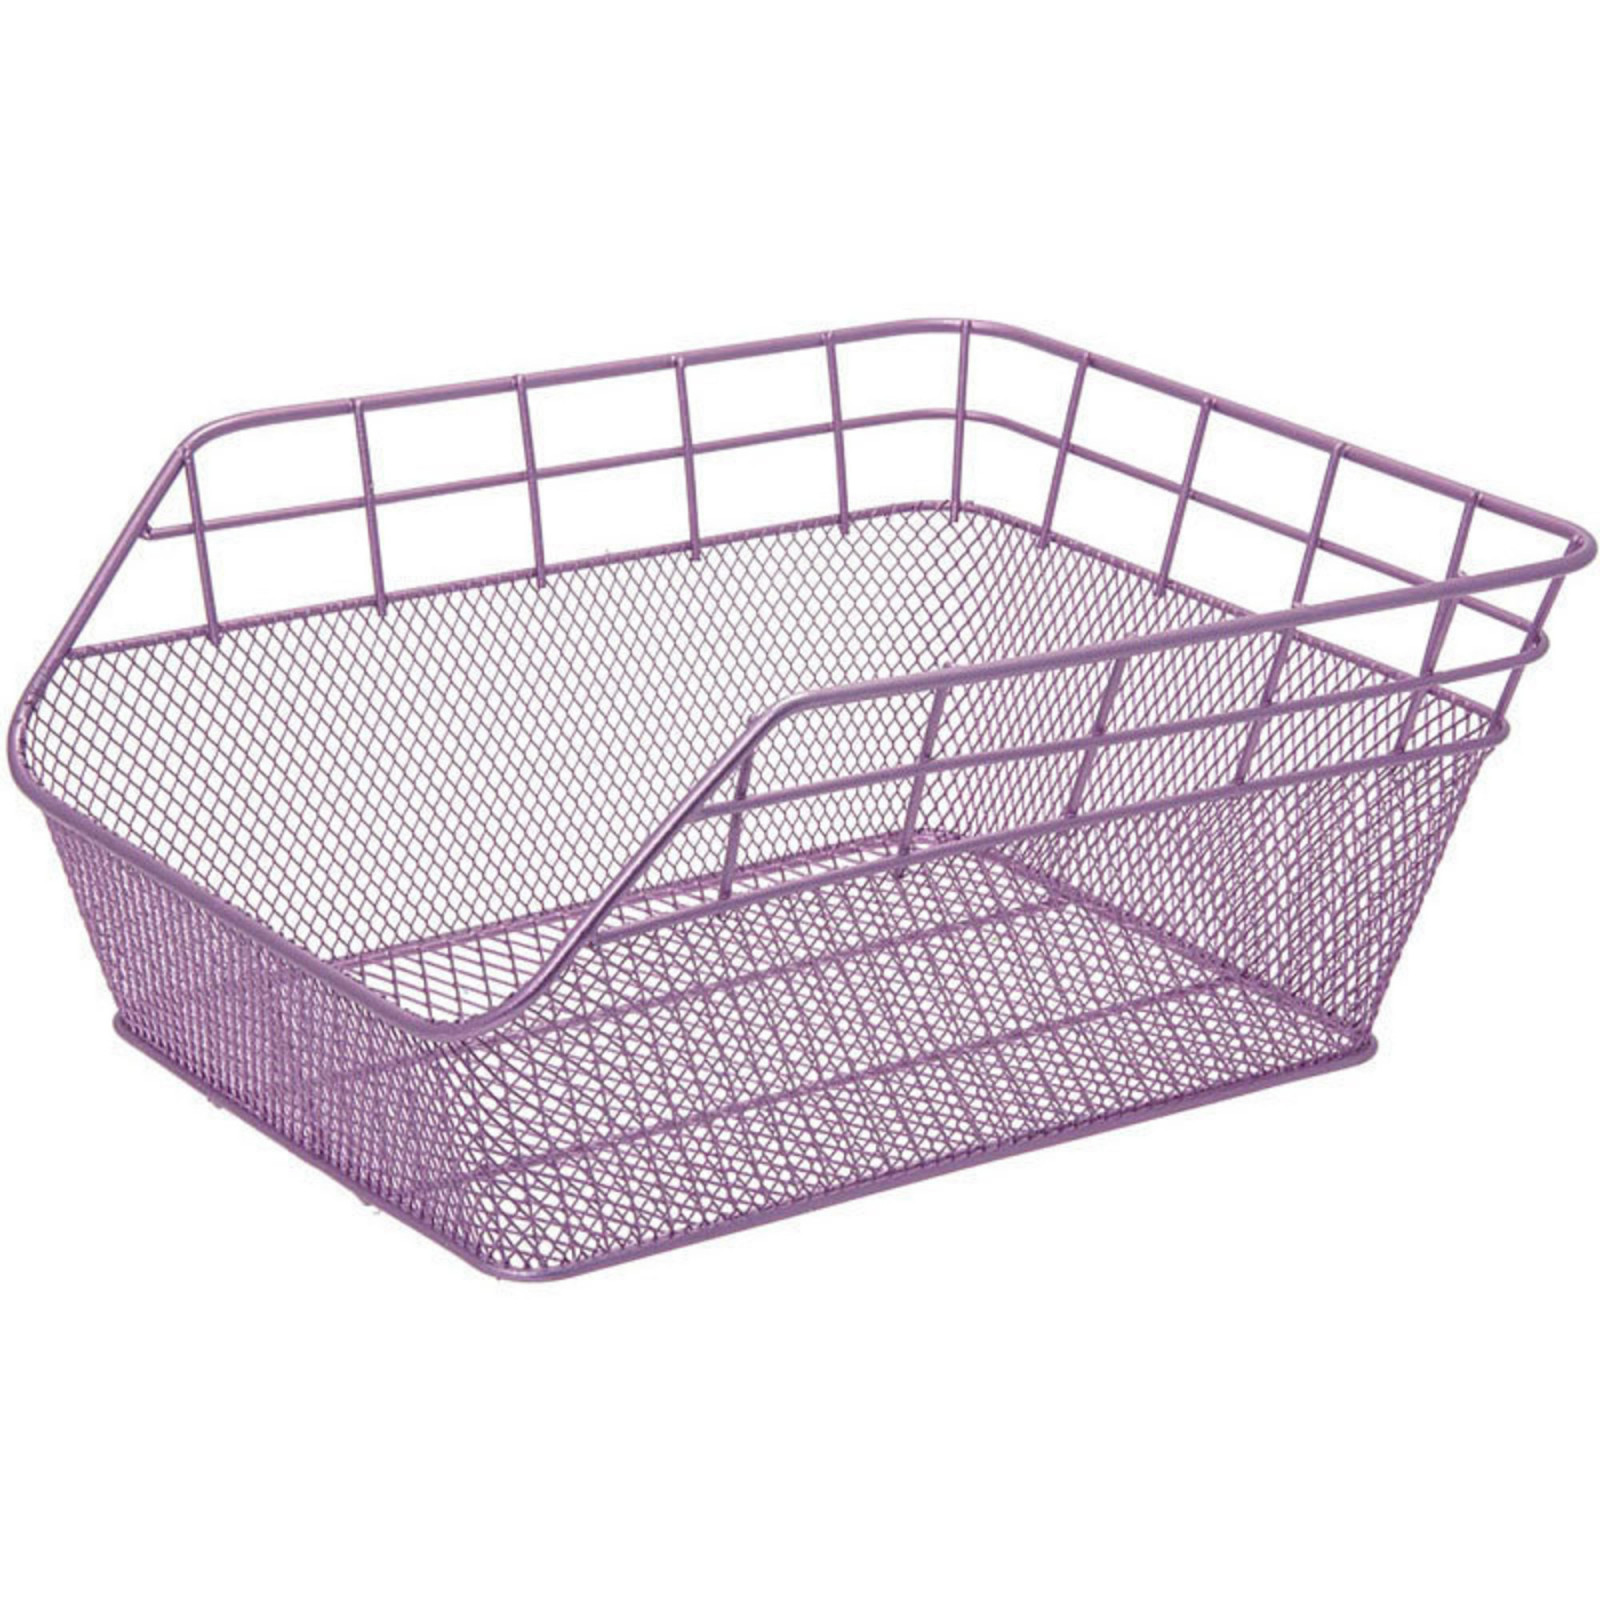 FANTASY REAR BICYCLE BASKET – IN COLOR LILAC